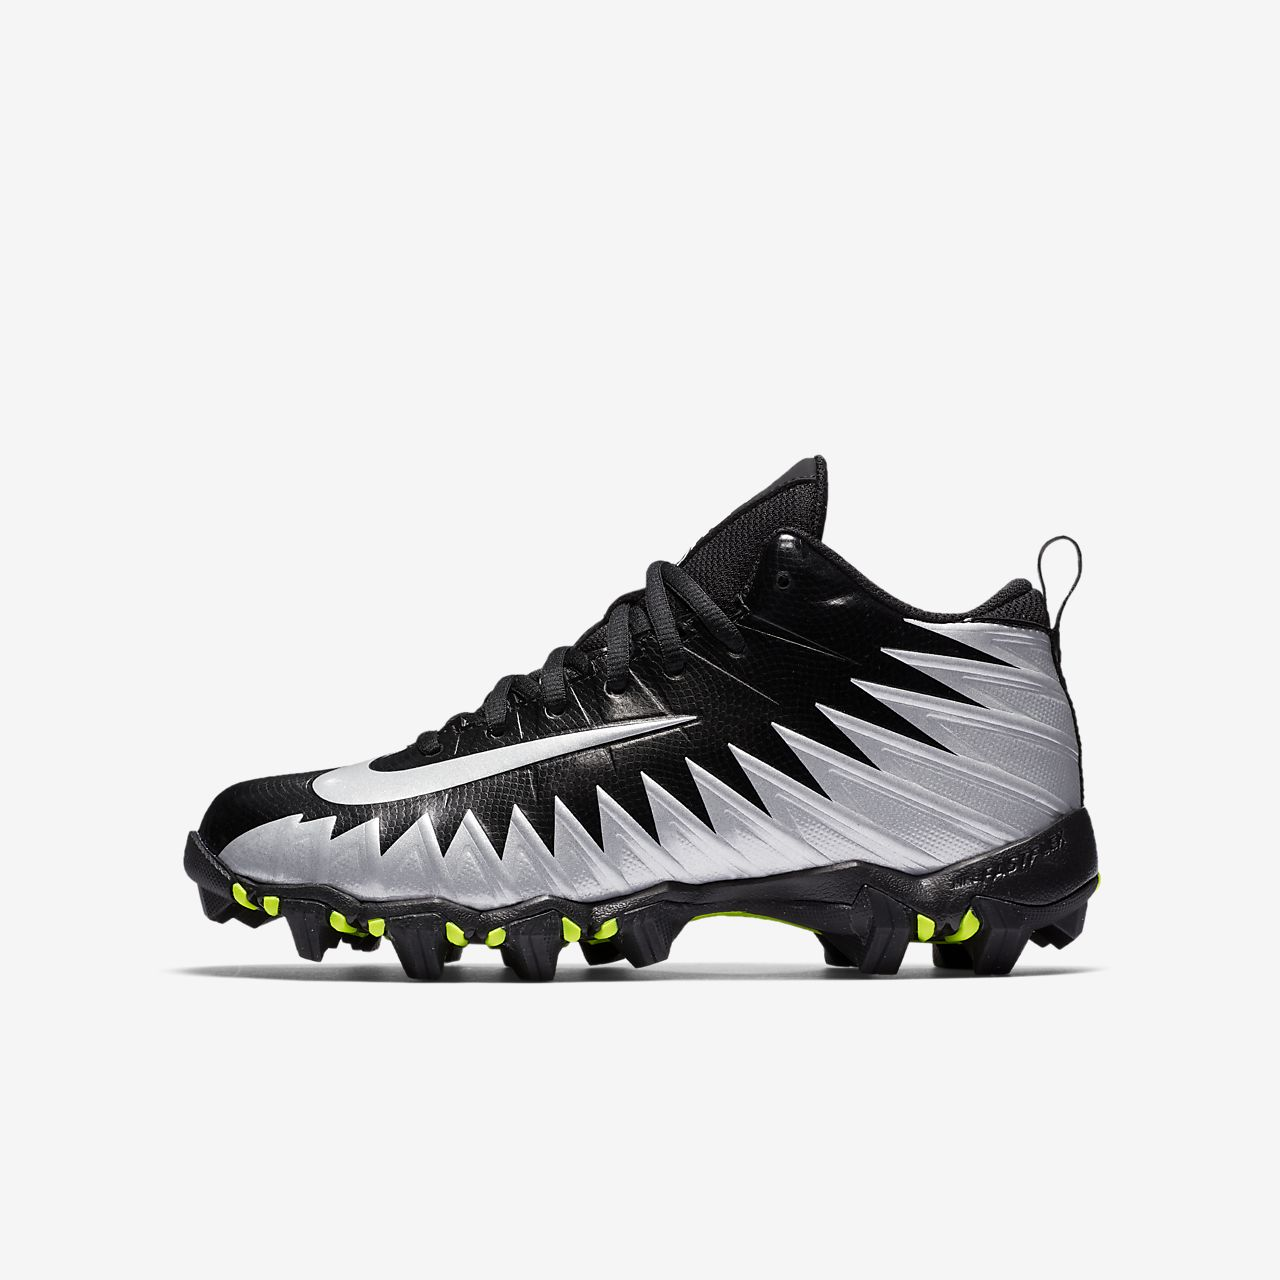 hot sale online 8d848 3c5b3 ... Nike Alpha Menace Shark LittleBig Kids Football Cleat